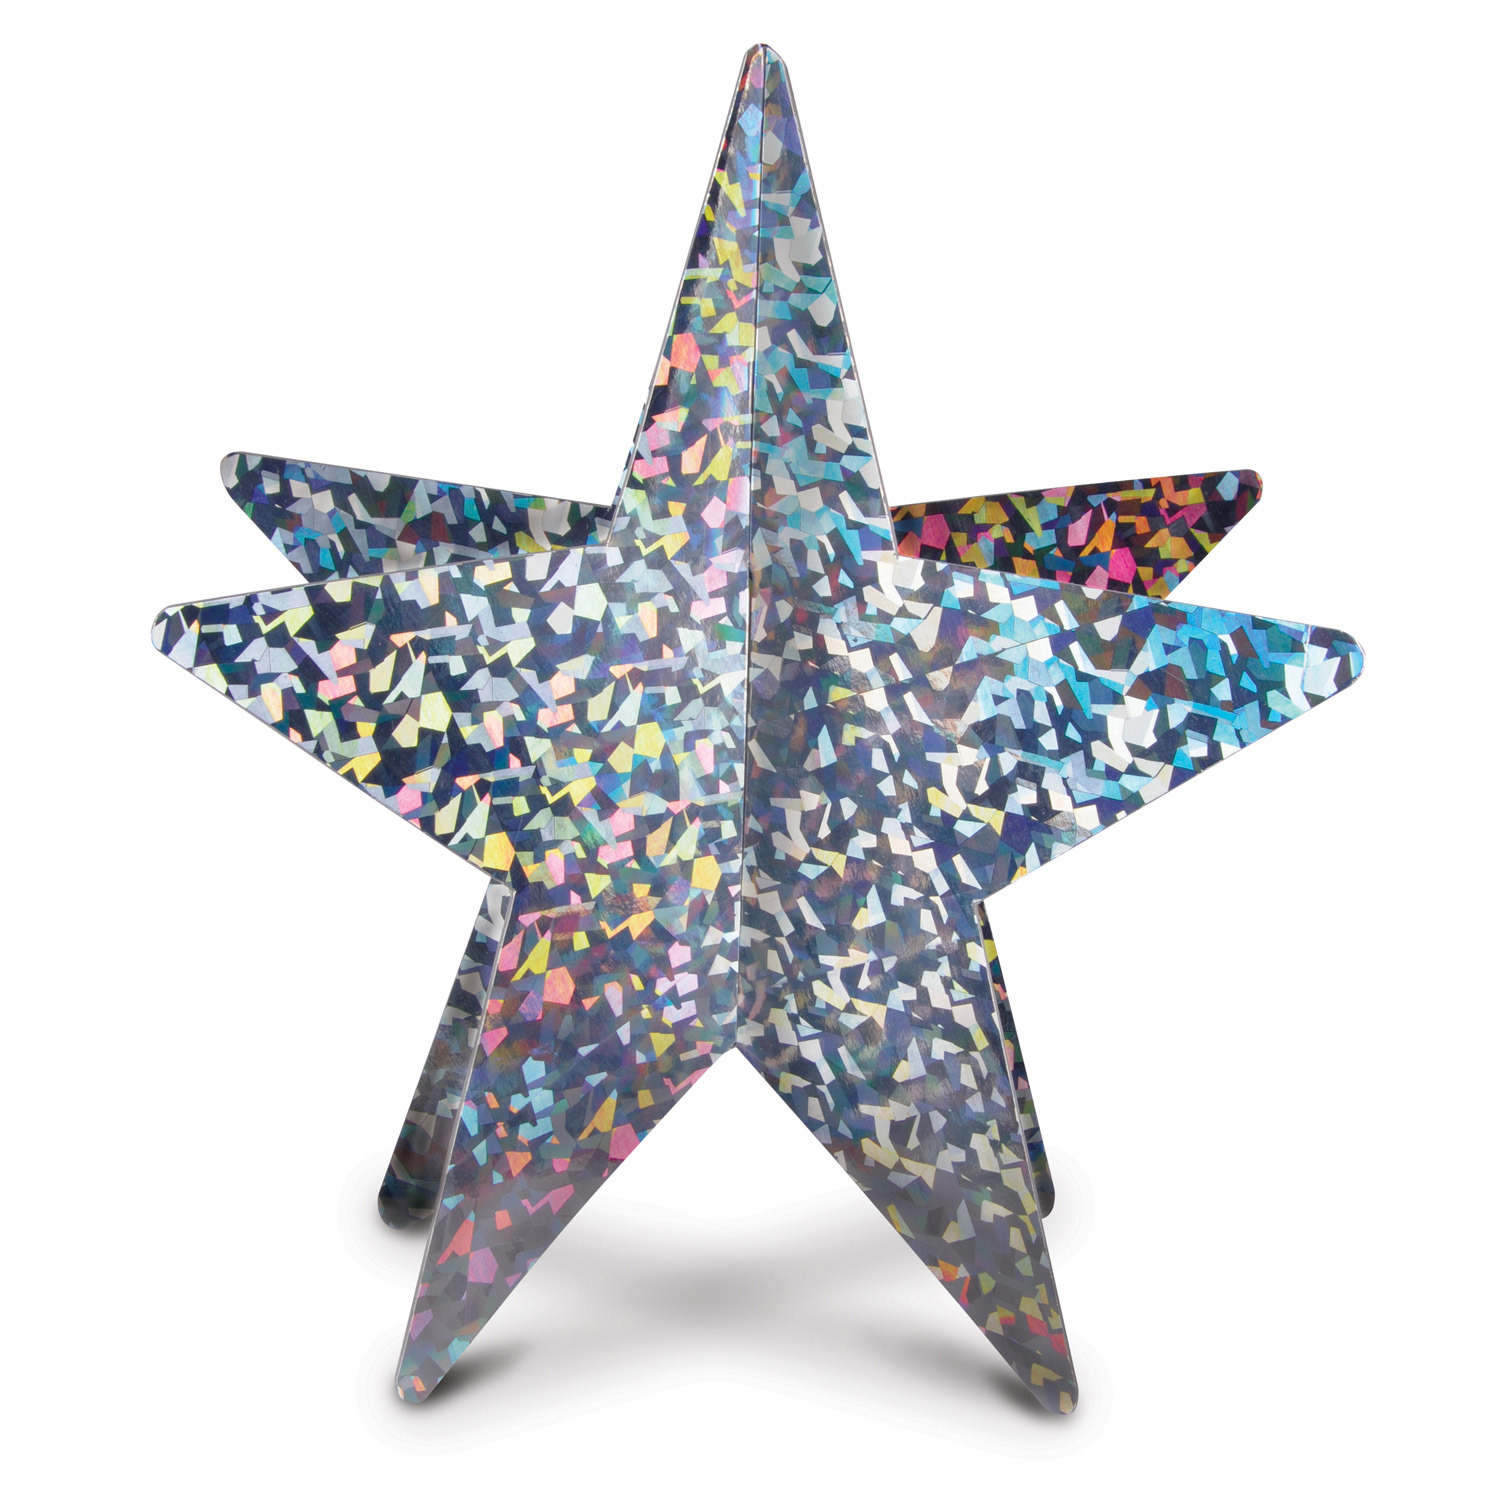 3-D Prismatic Star Centerpiece (Pack of 12) 3-D Prismatic Star Centerpiece, decoration, centerpiece, new years eve, wholesale, inexpensive, bulk